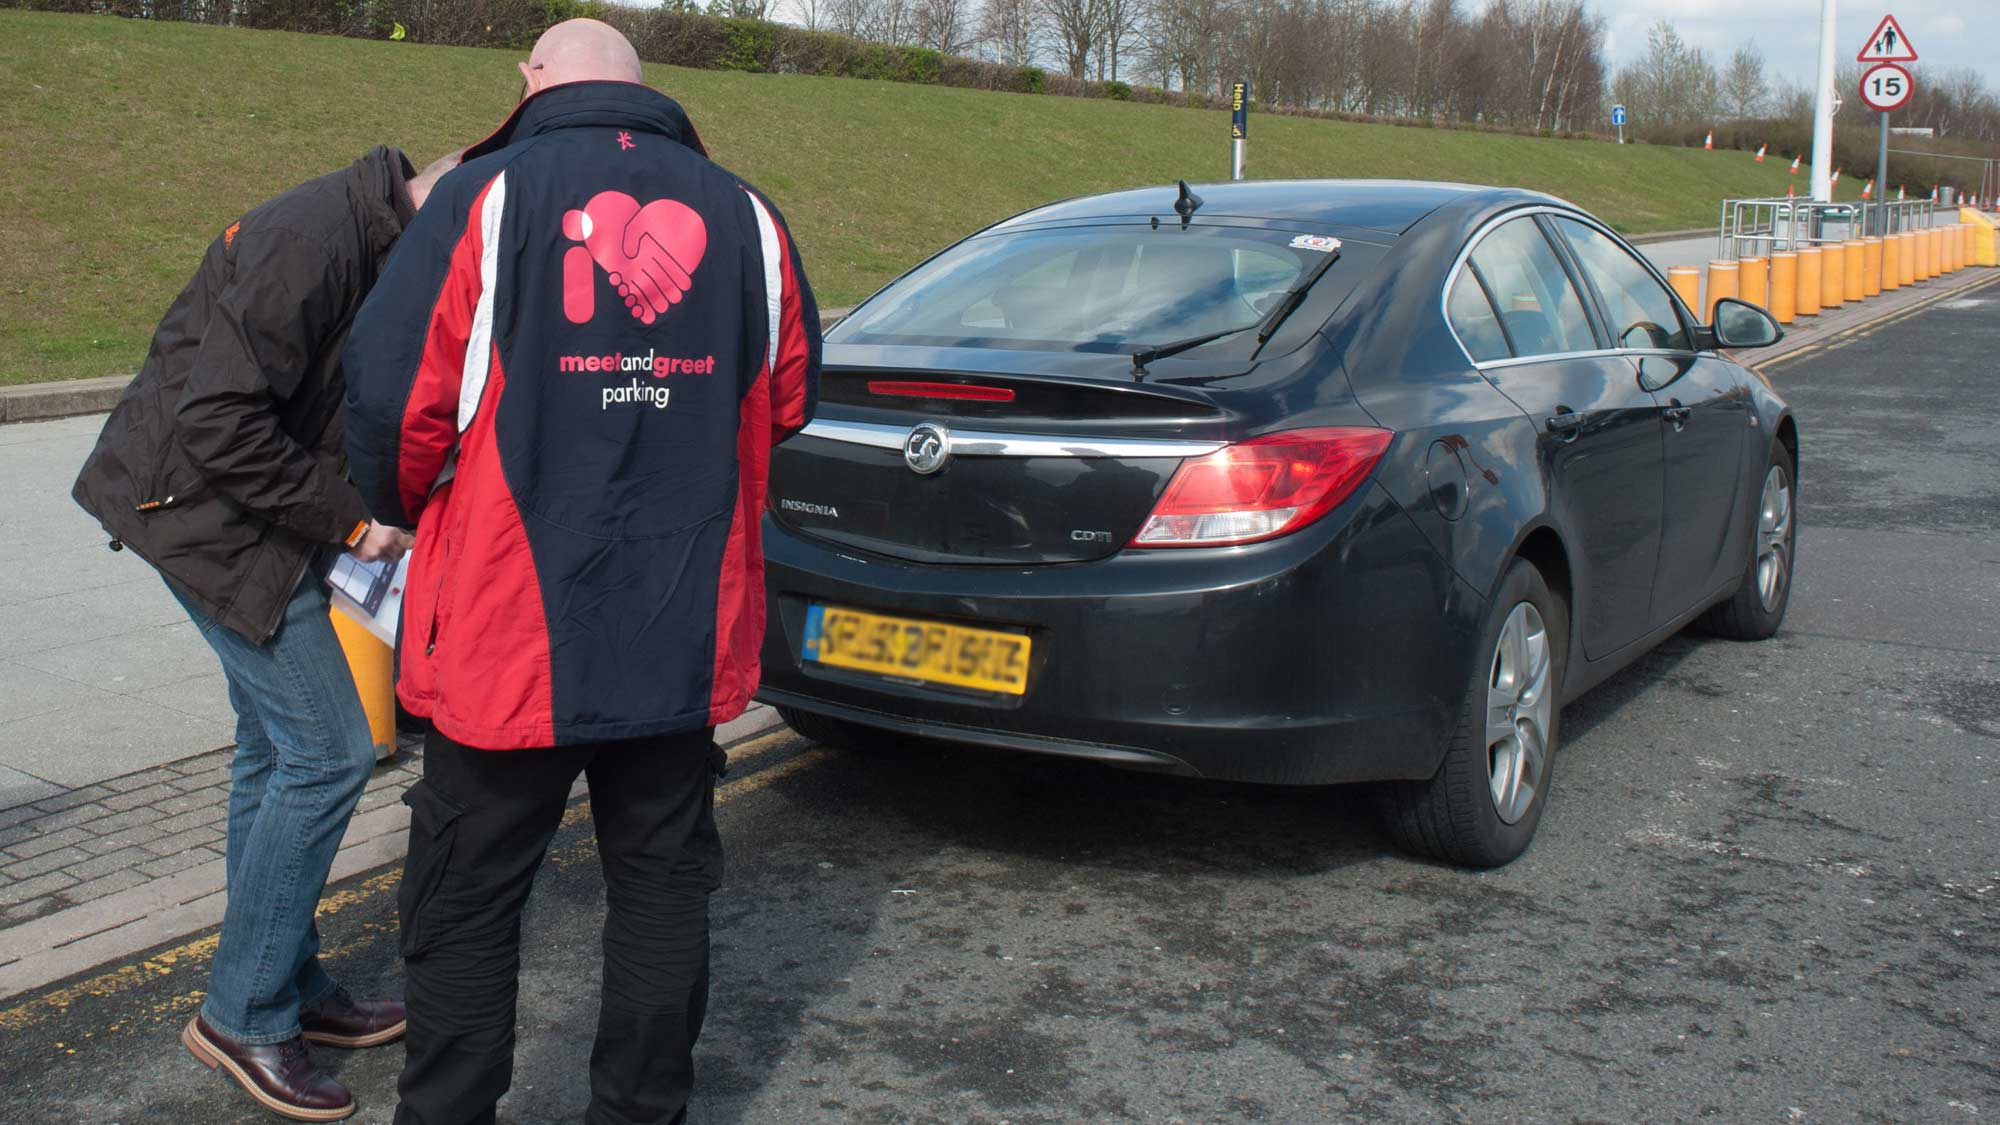 True valet parking stansted airport i love i love meet and greet one of most experienced airport valet parking teams in the uk is claiming that some customers will not be receiving a true valet m4hsunfo